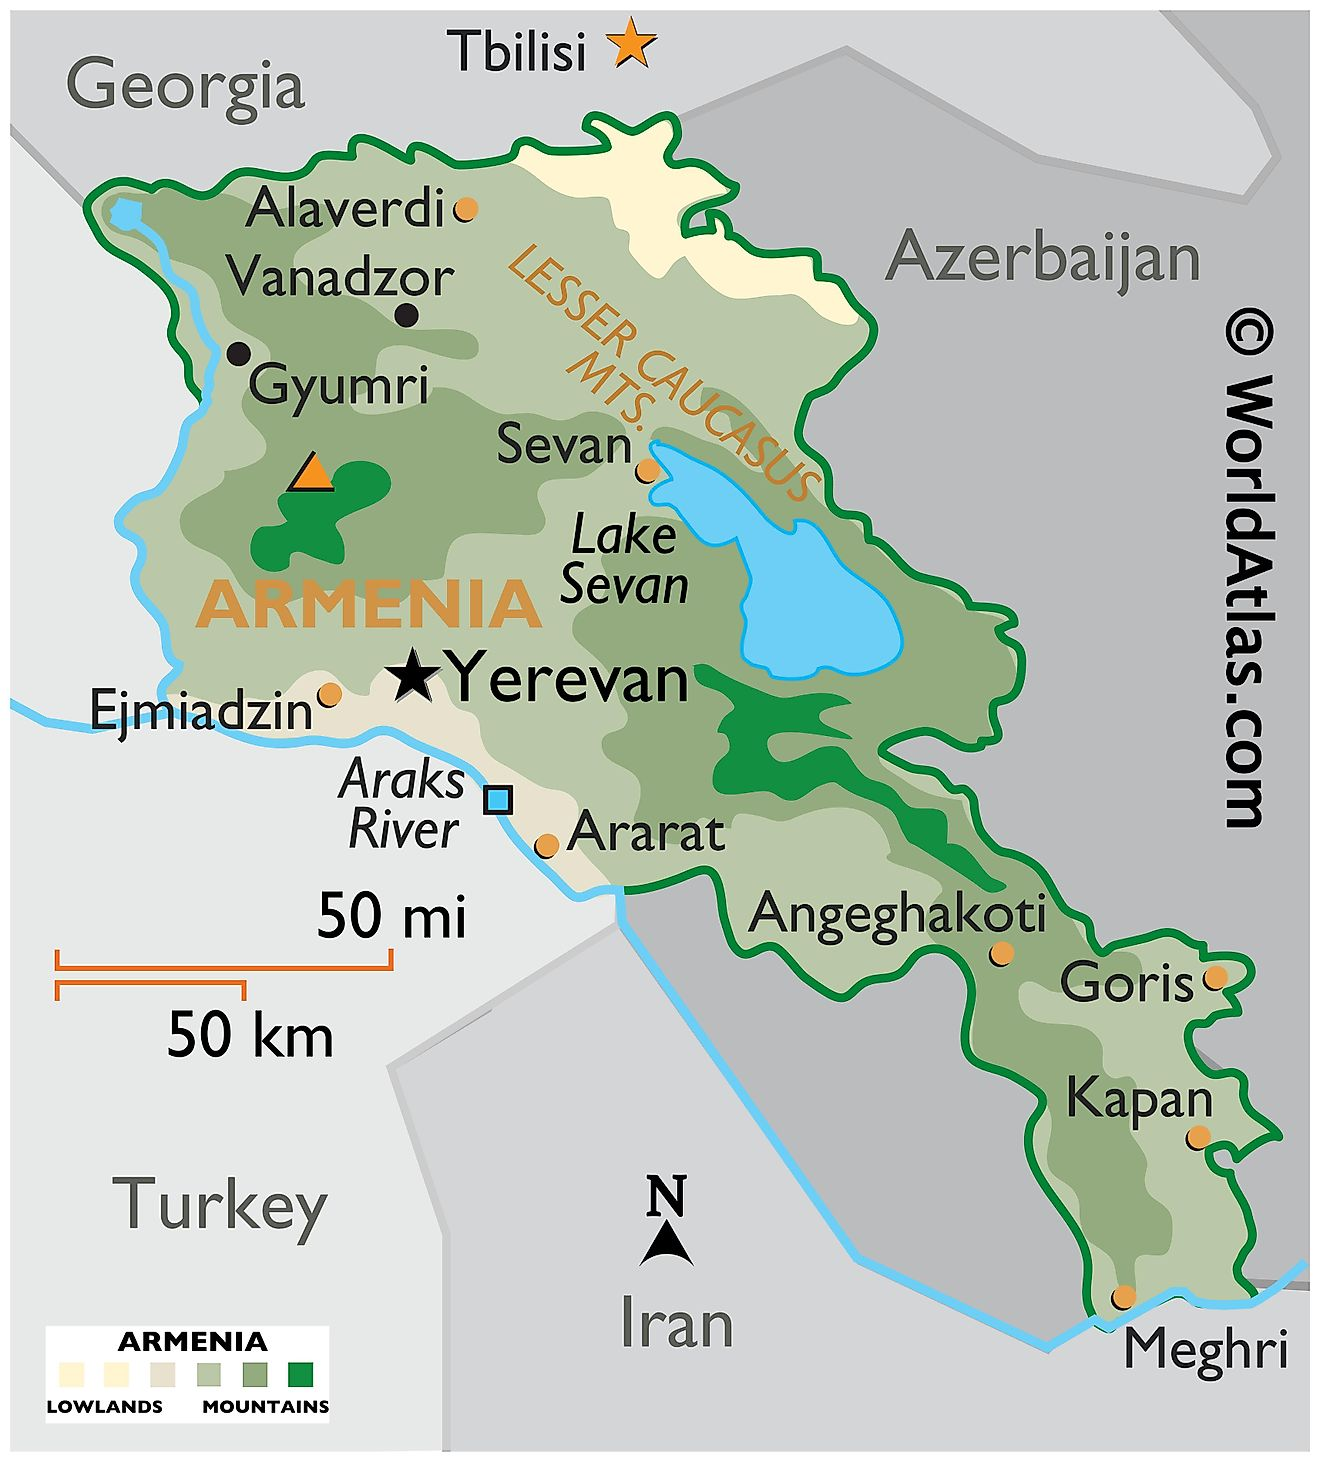 Physical Map of Armenia showing state boundaries, relief, major rivers, mountain ranges, important cities, etc.